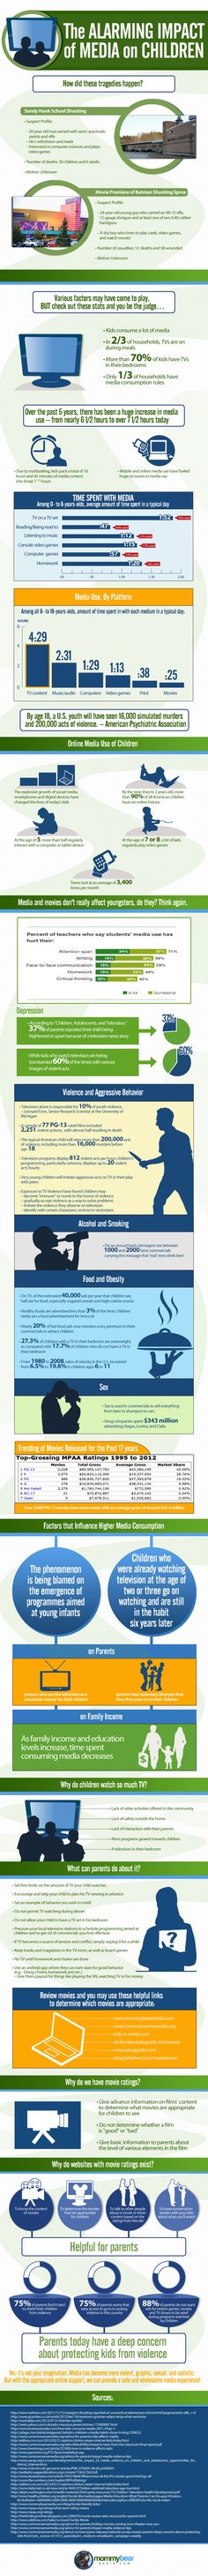 At Mommy Bear Media we are alarmed by the continuing lowering of standards in the media and the impact it has on our children.  We urge you to consider the infographic below and consider how media has degraded over time and what we can do as individuals and as a society to address the problem.